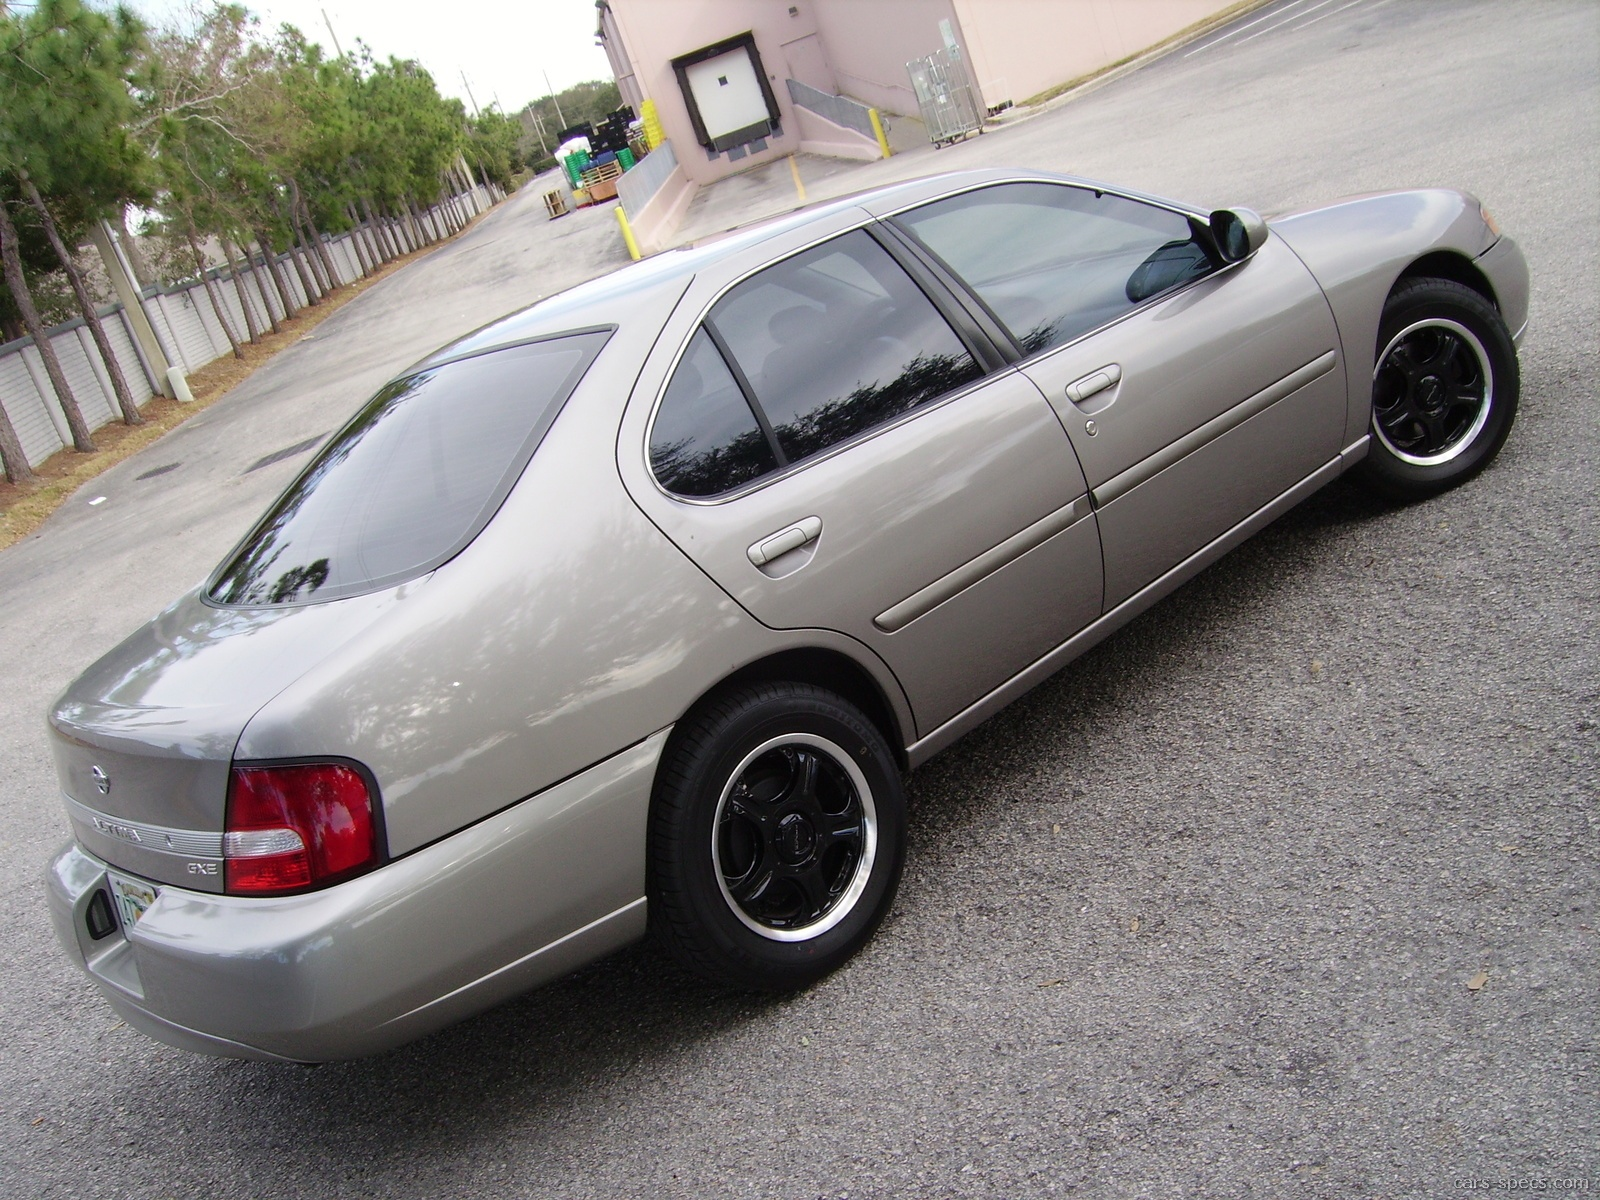 2001 Nissan Altima Sedan Specifications Pictures Prices